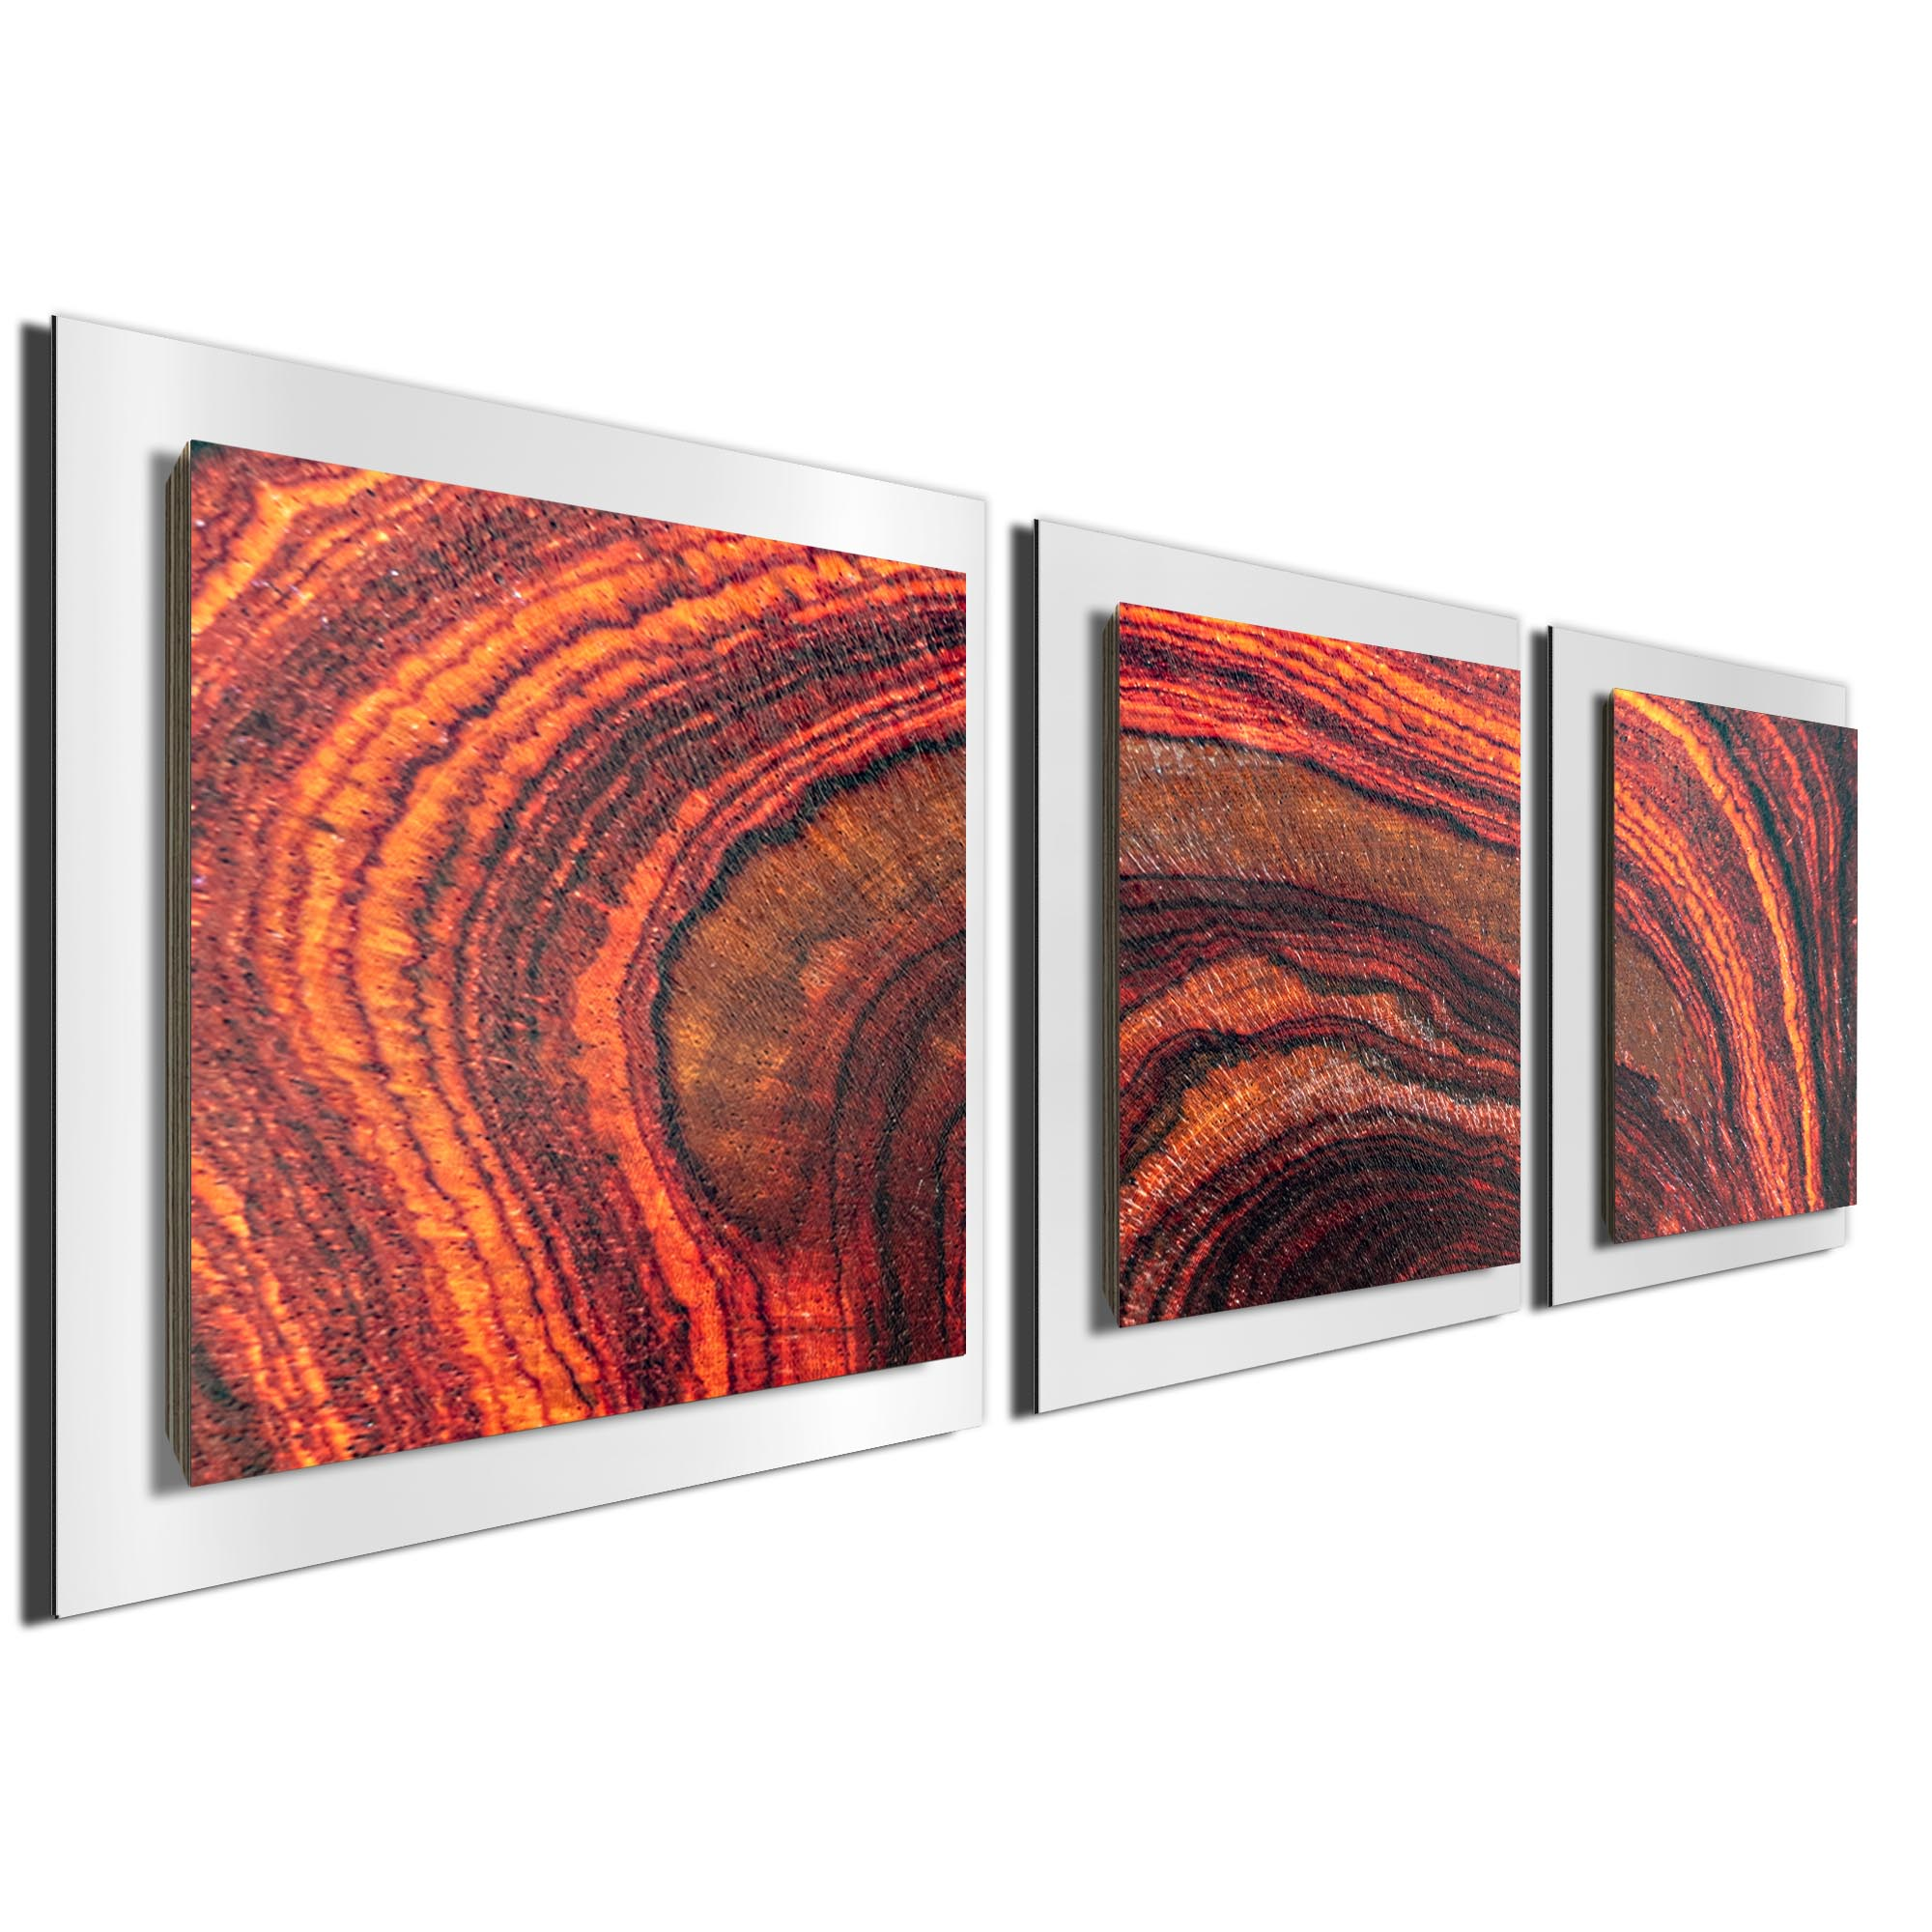 Arched Wood Essence White by Adam Schwoeppe Rustic Modern Style Wood Wall Art - Image 2